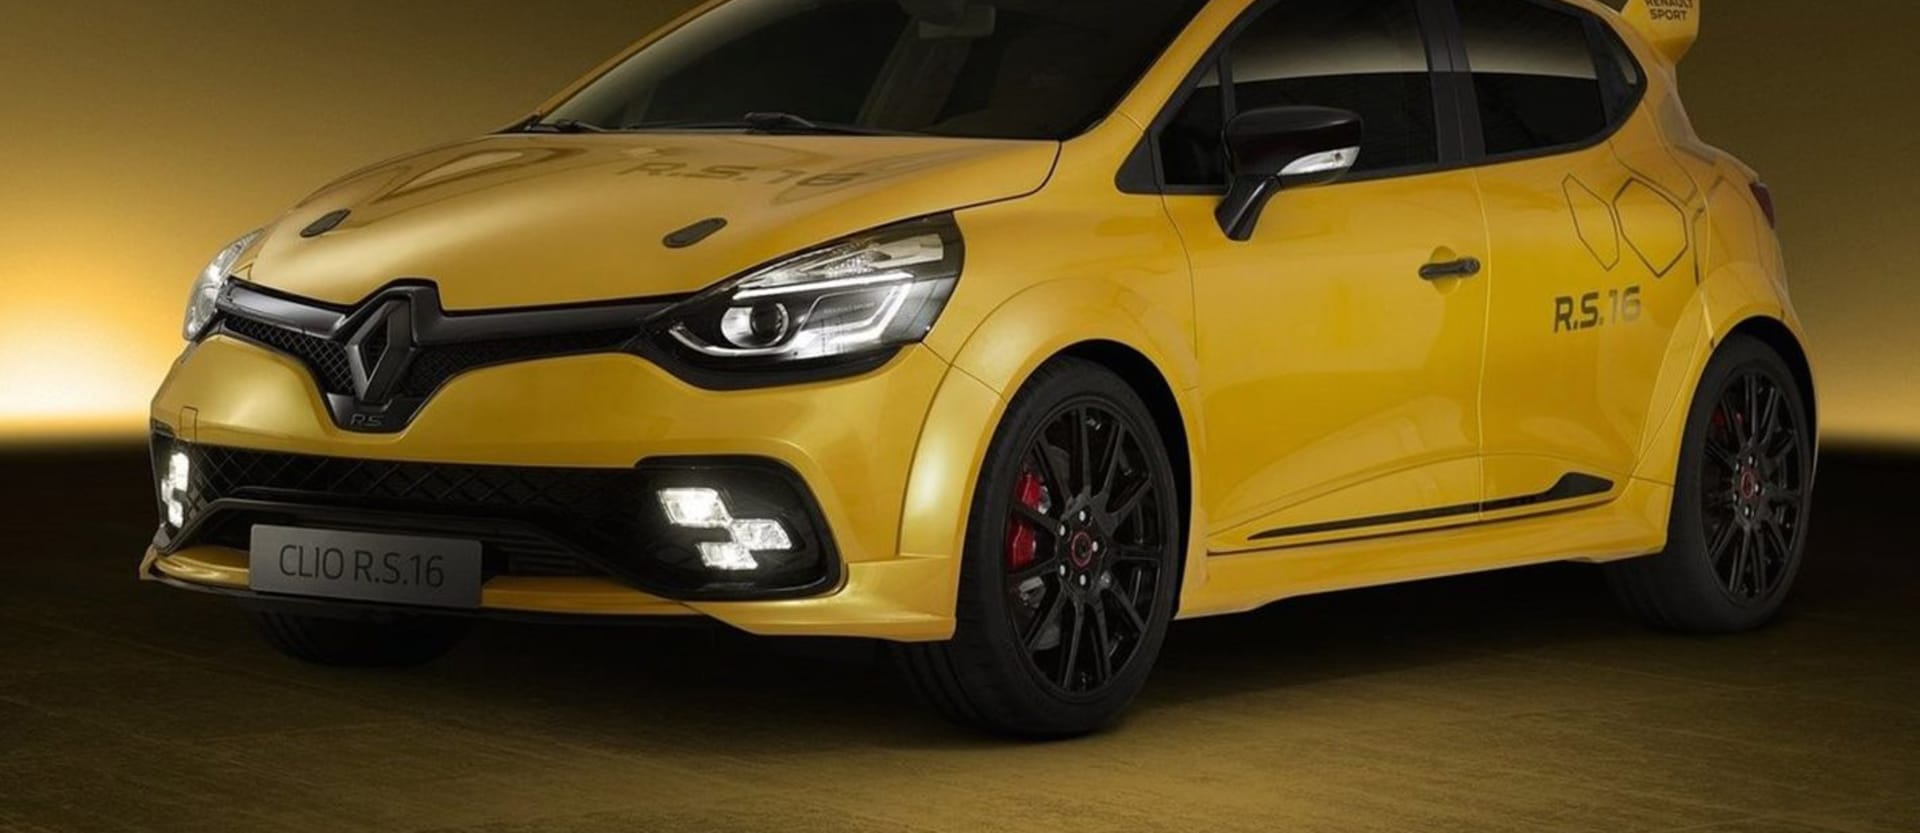 Renault Clio RS16 Concept revealed